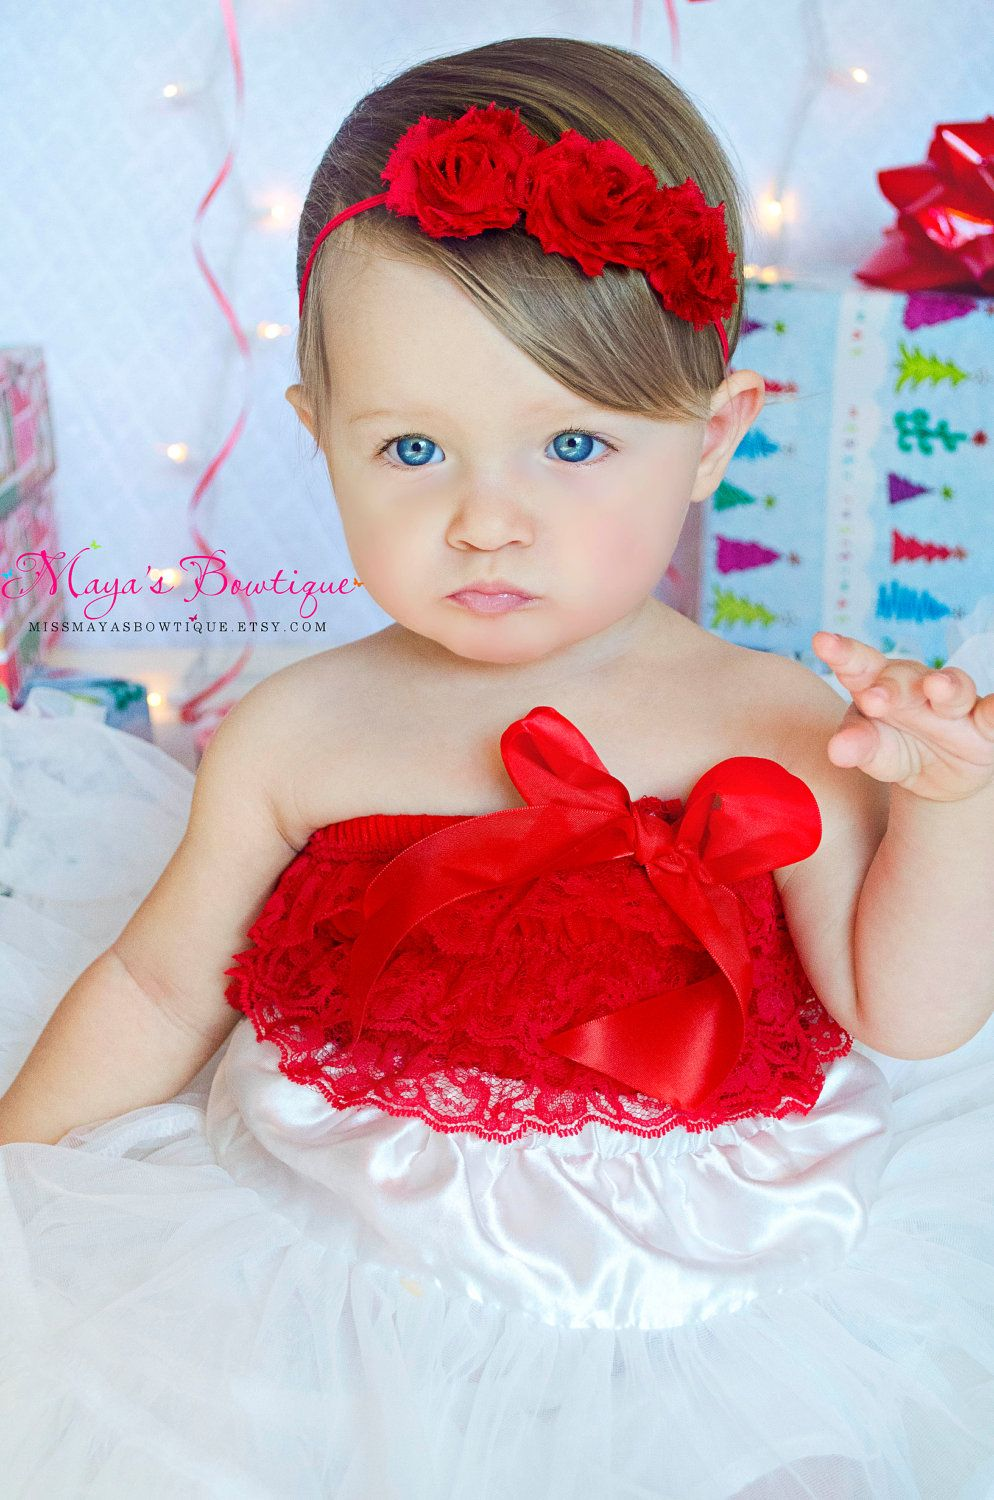 Red Flower Headband - Christmas Headband - Valentines Day Headband - Baby  Headband - Baby Girl Headband - Newborn Headband - Infant Headband. d97a9f6e963